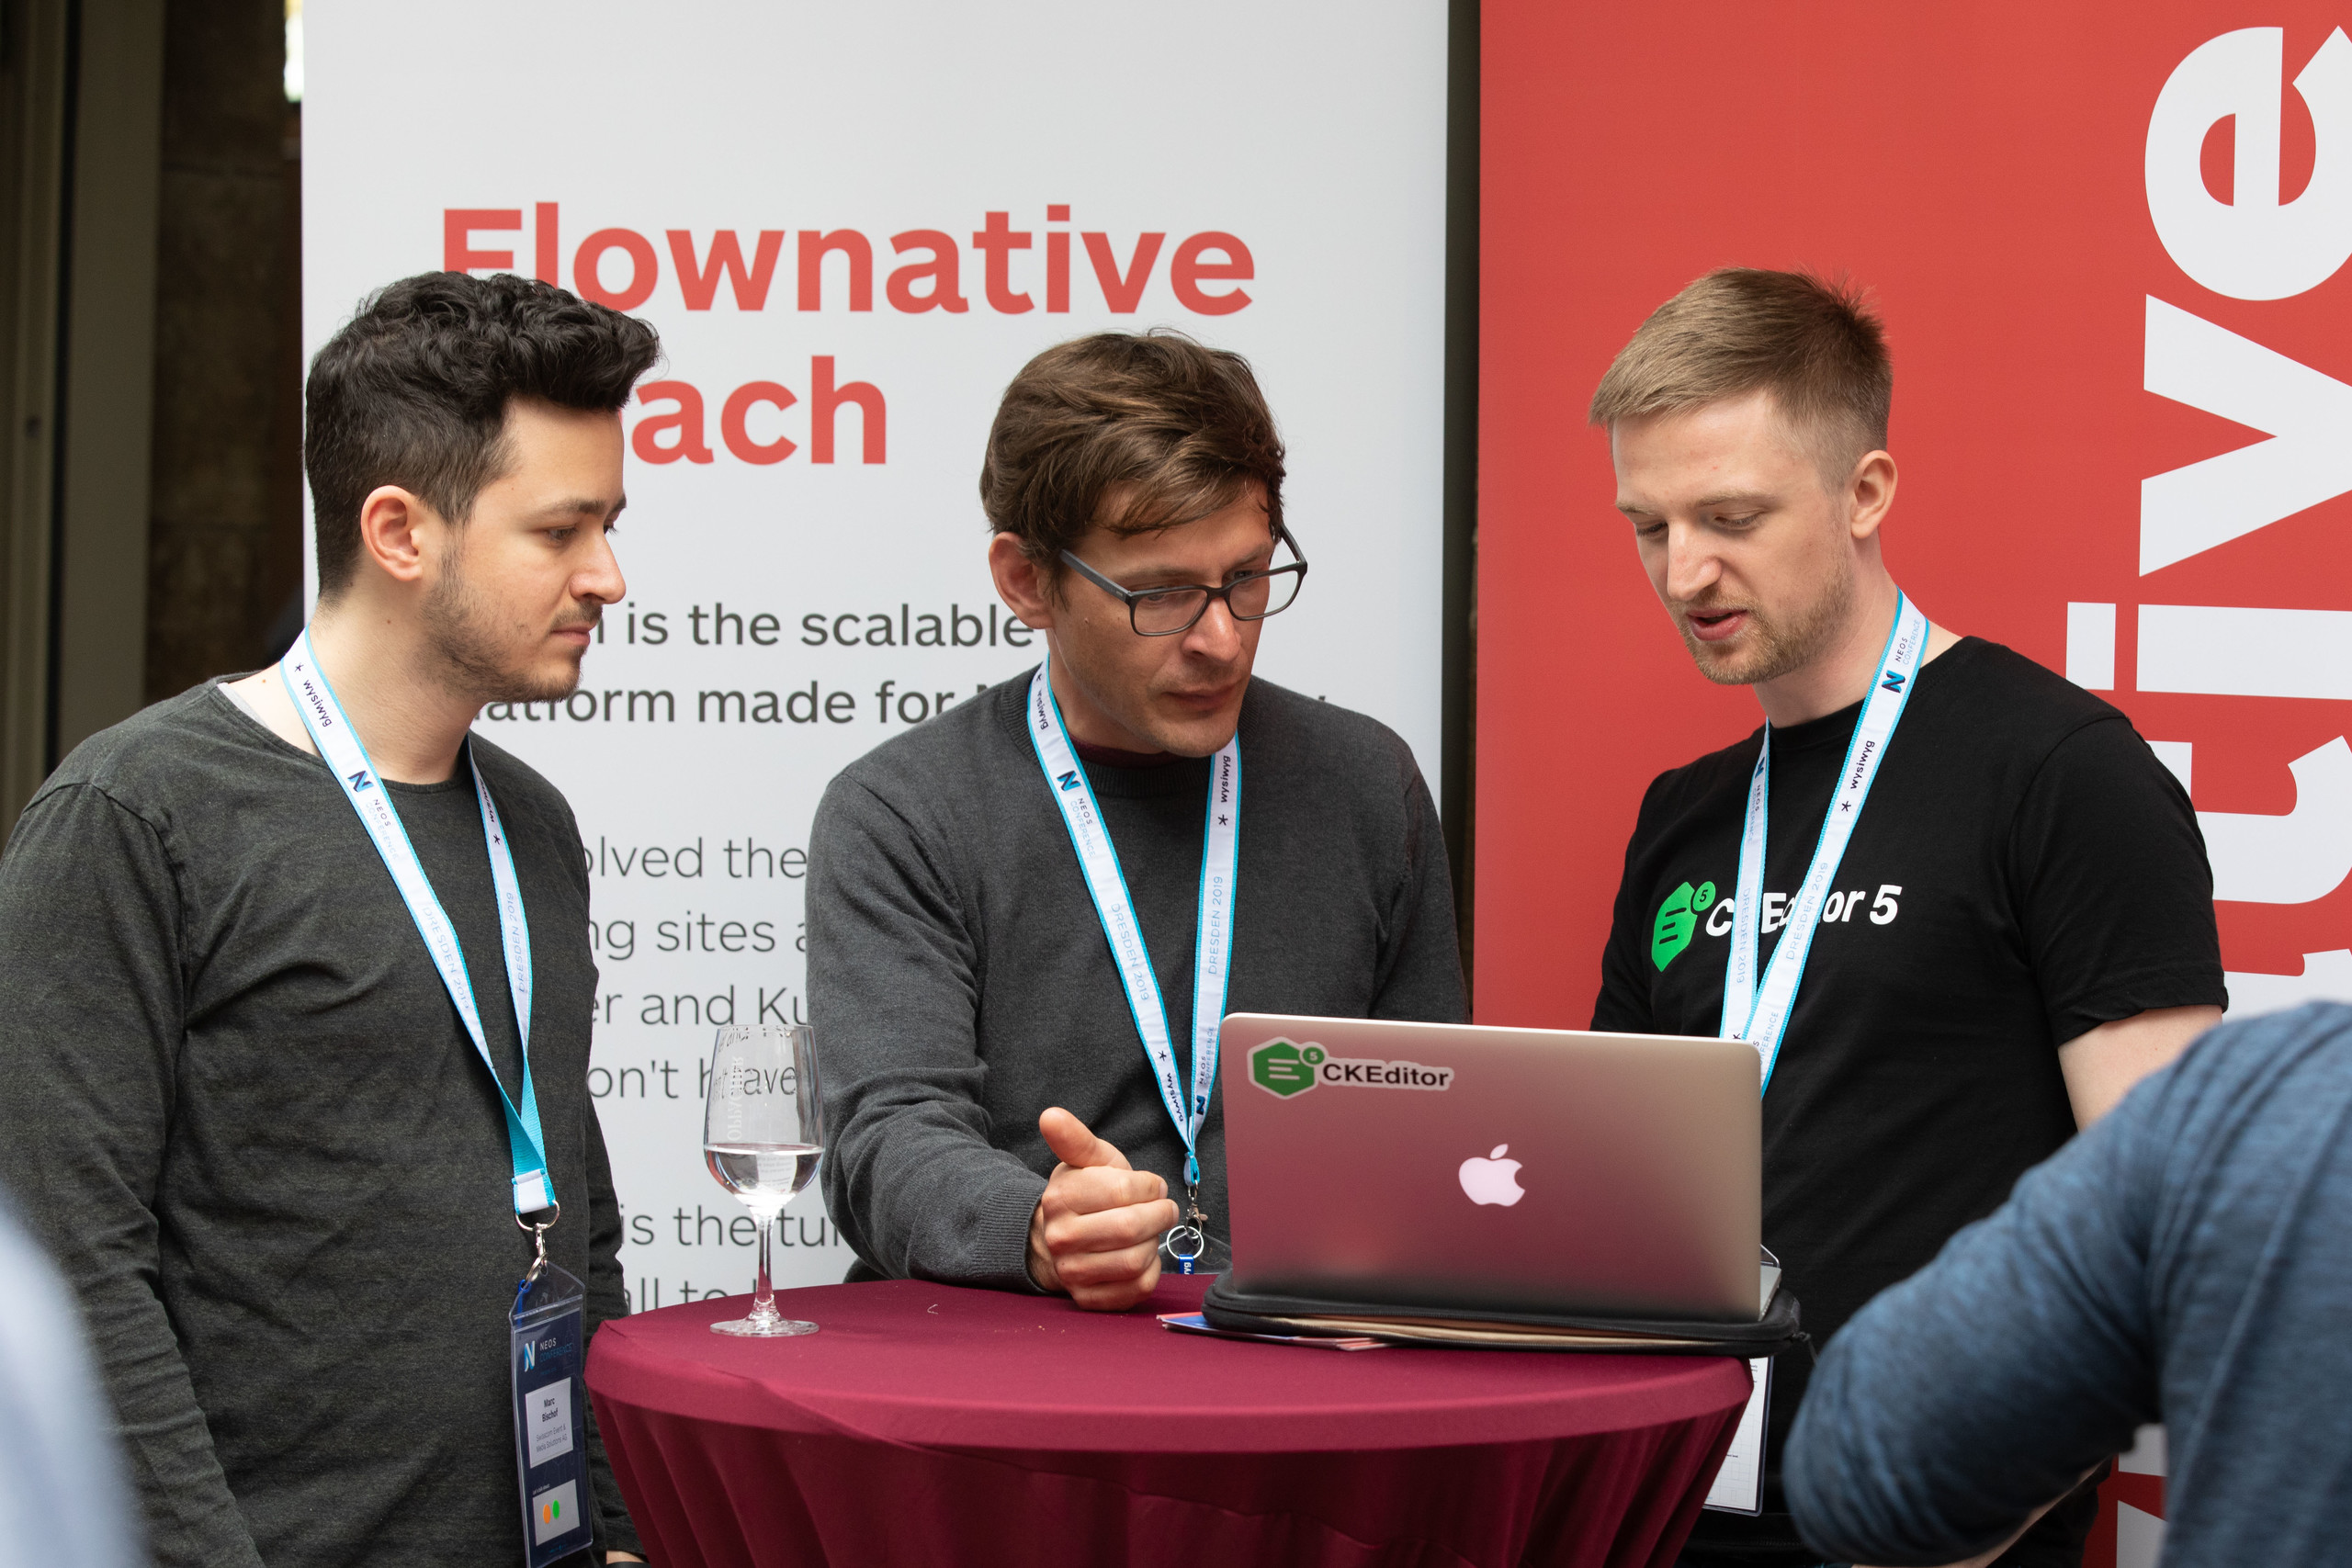 CKEditor5 being discussed in front of a Flownative Beach banner